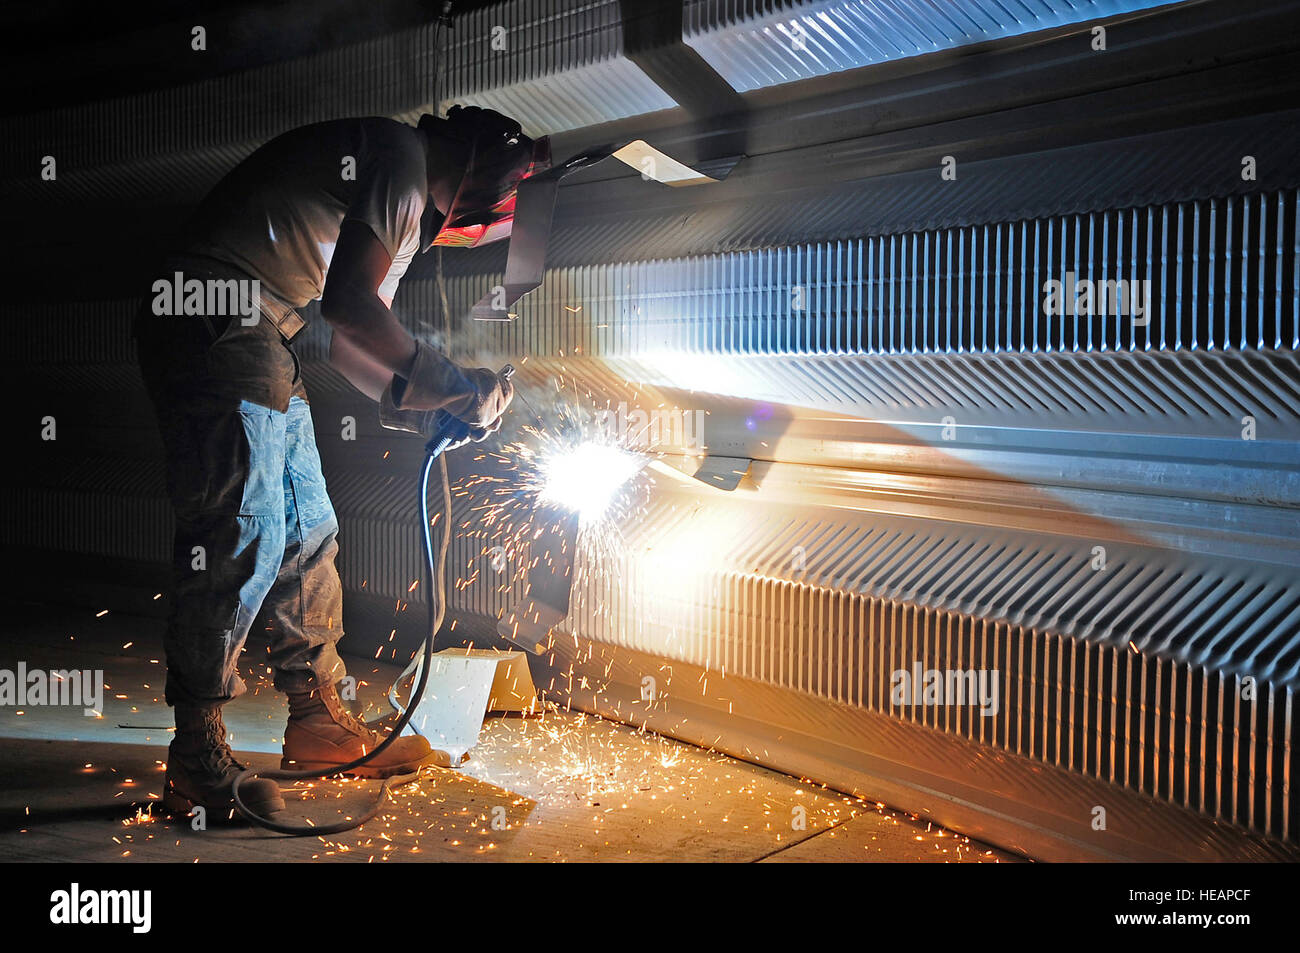 U.S. Air Force Airman 1st Class Robert Campbell Jr., 557th Expeditionary RED HORSE Squadron, uses a welder to modify - Stock Image